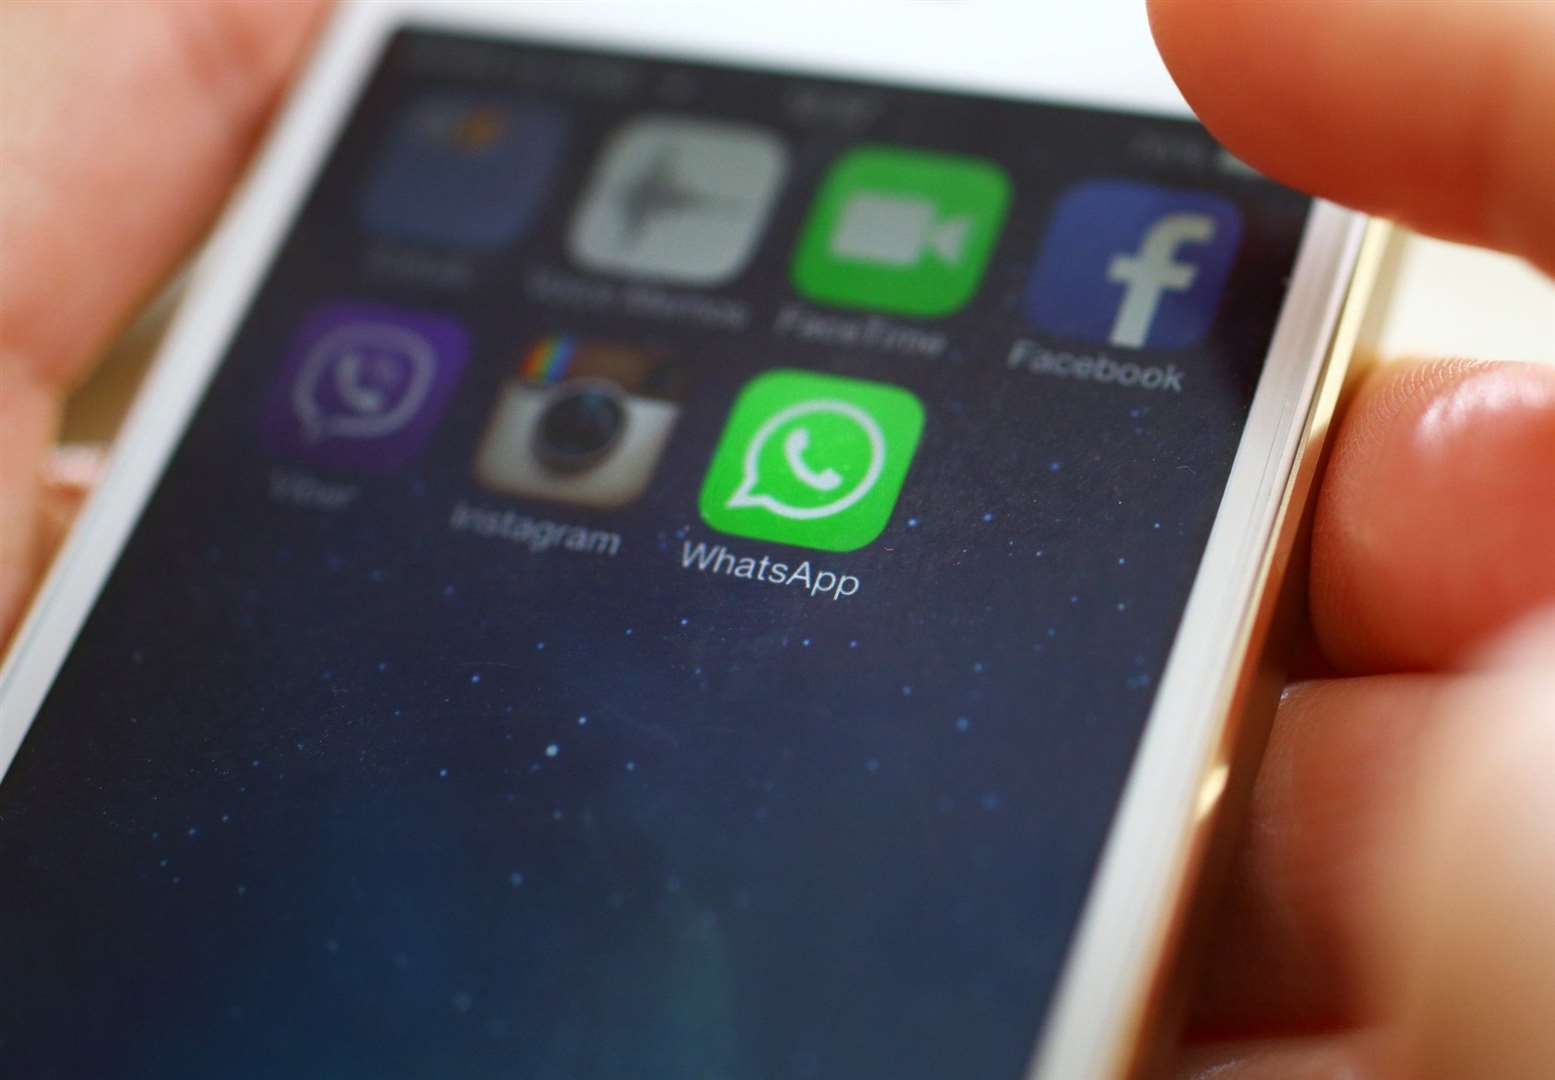 KentOnline readers can stay up to date with Kent news on WhatsApp